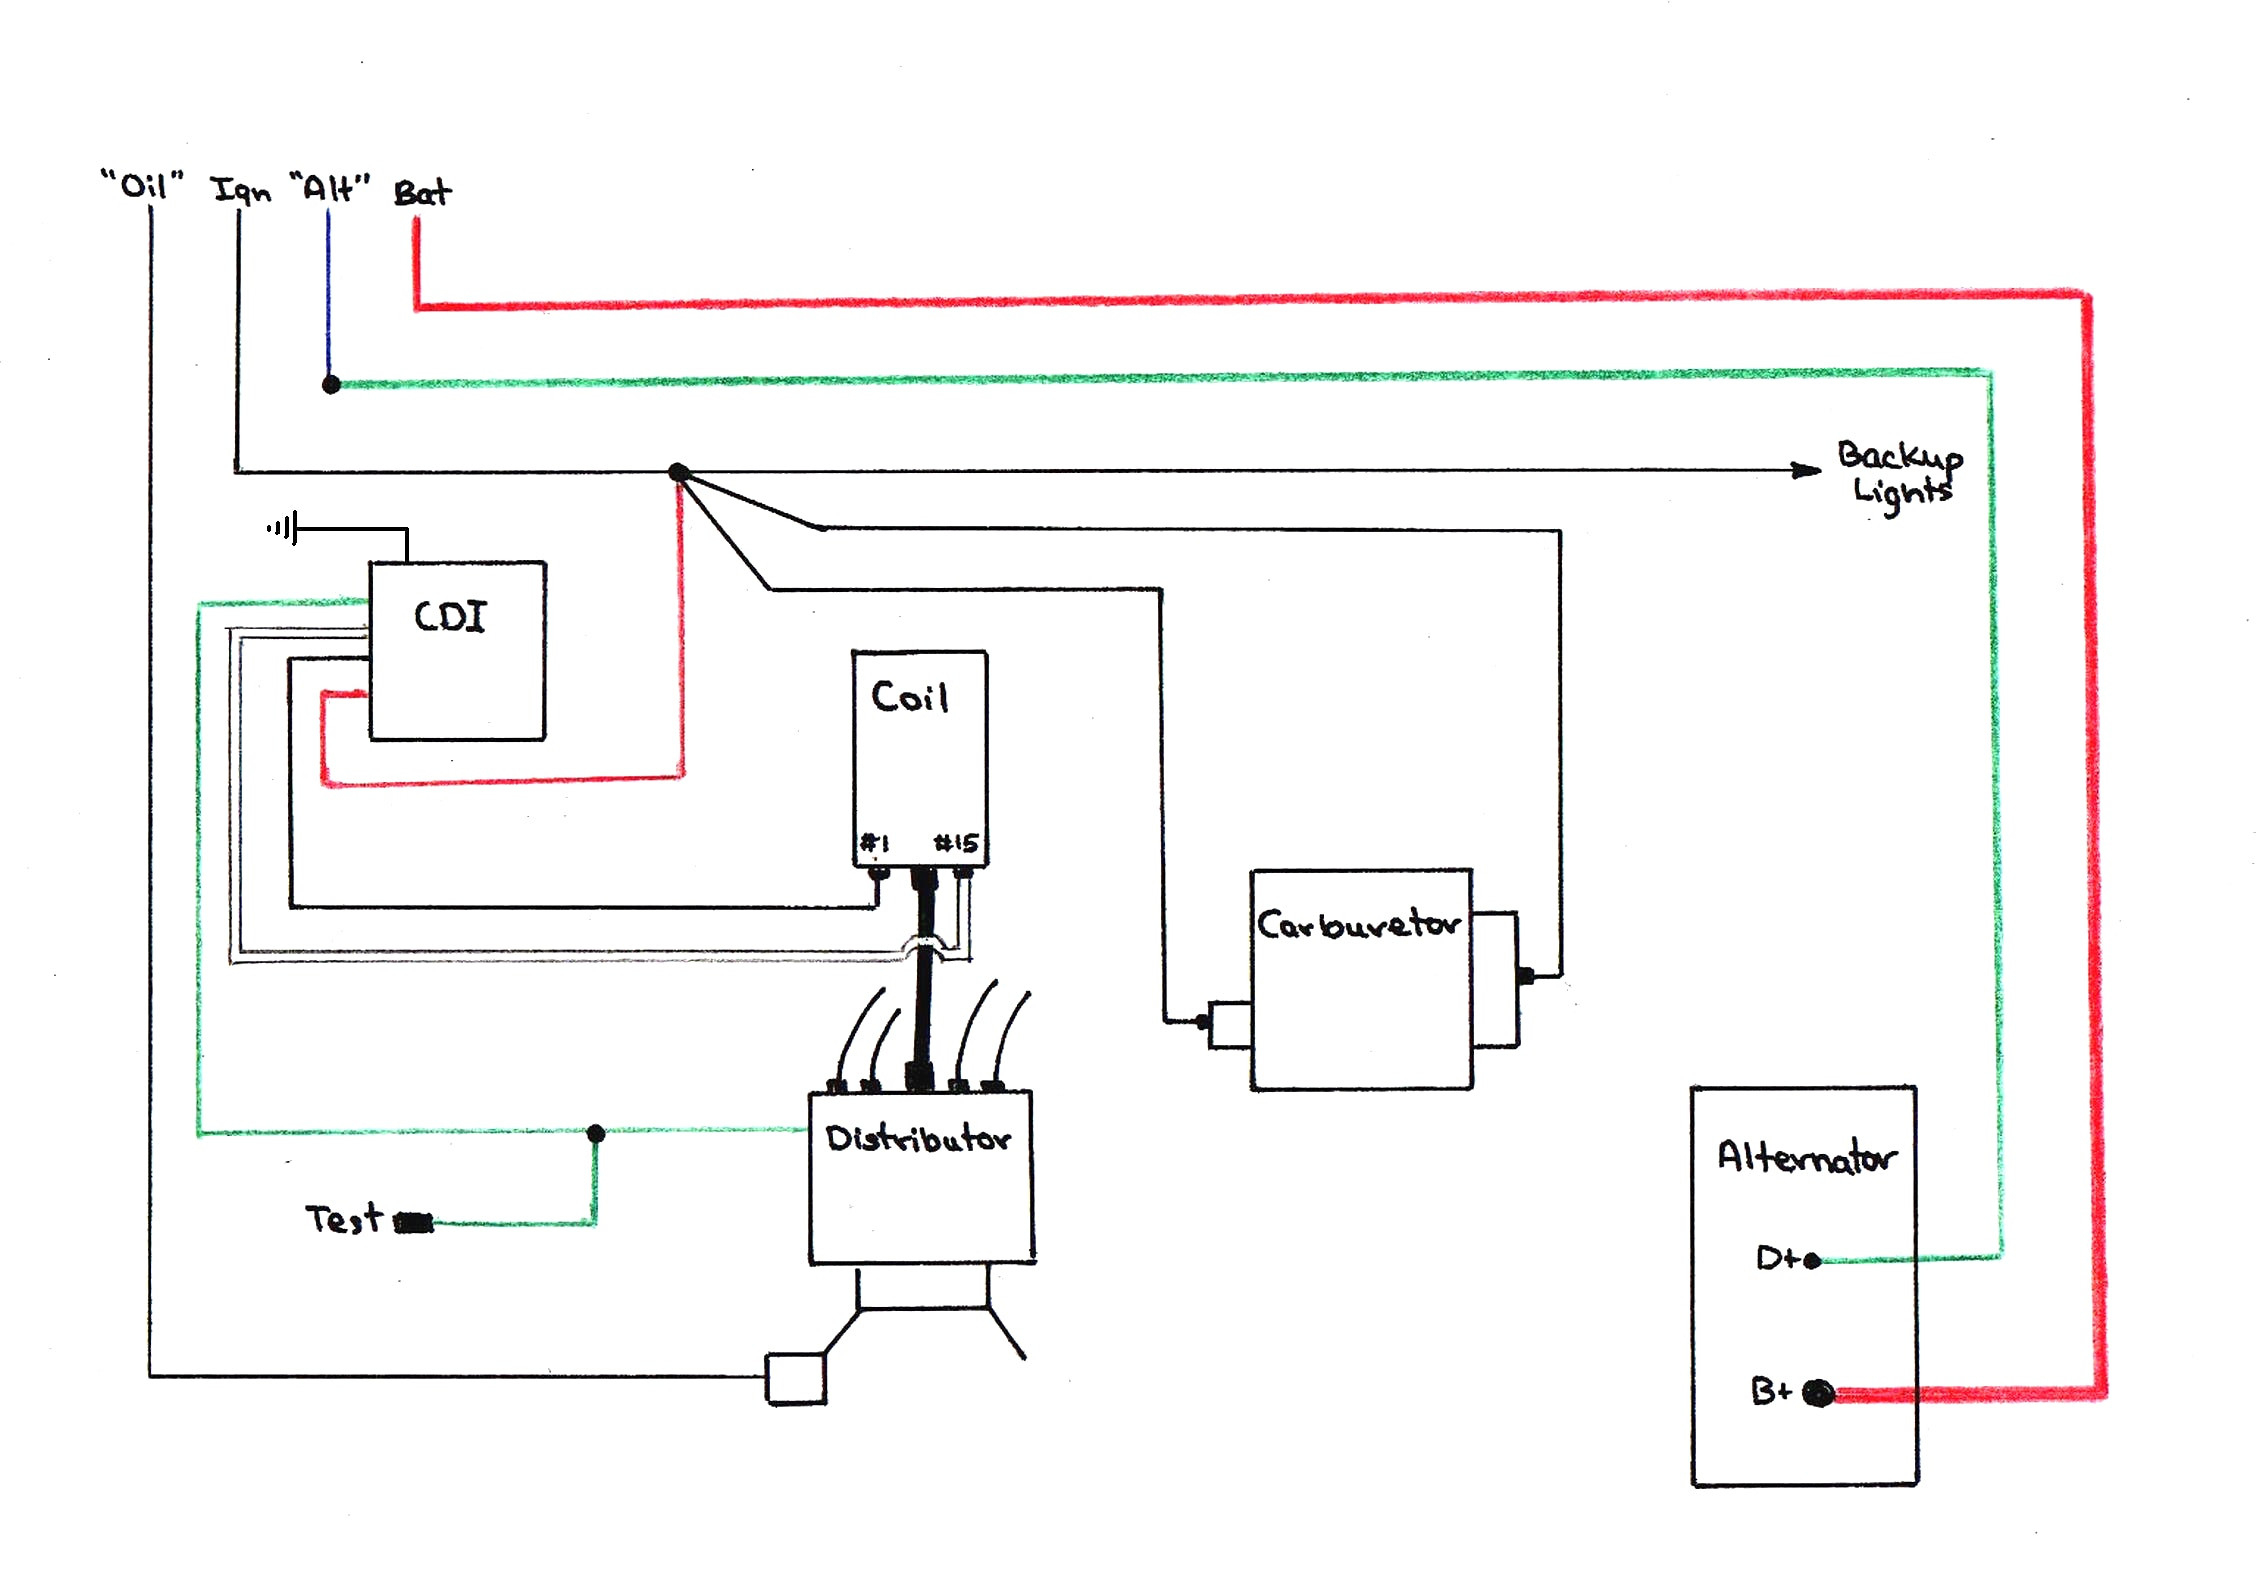 Cdi Box Wiring Diagram For Ac